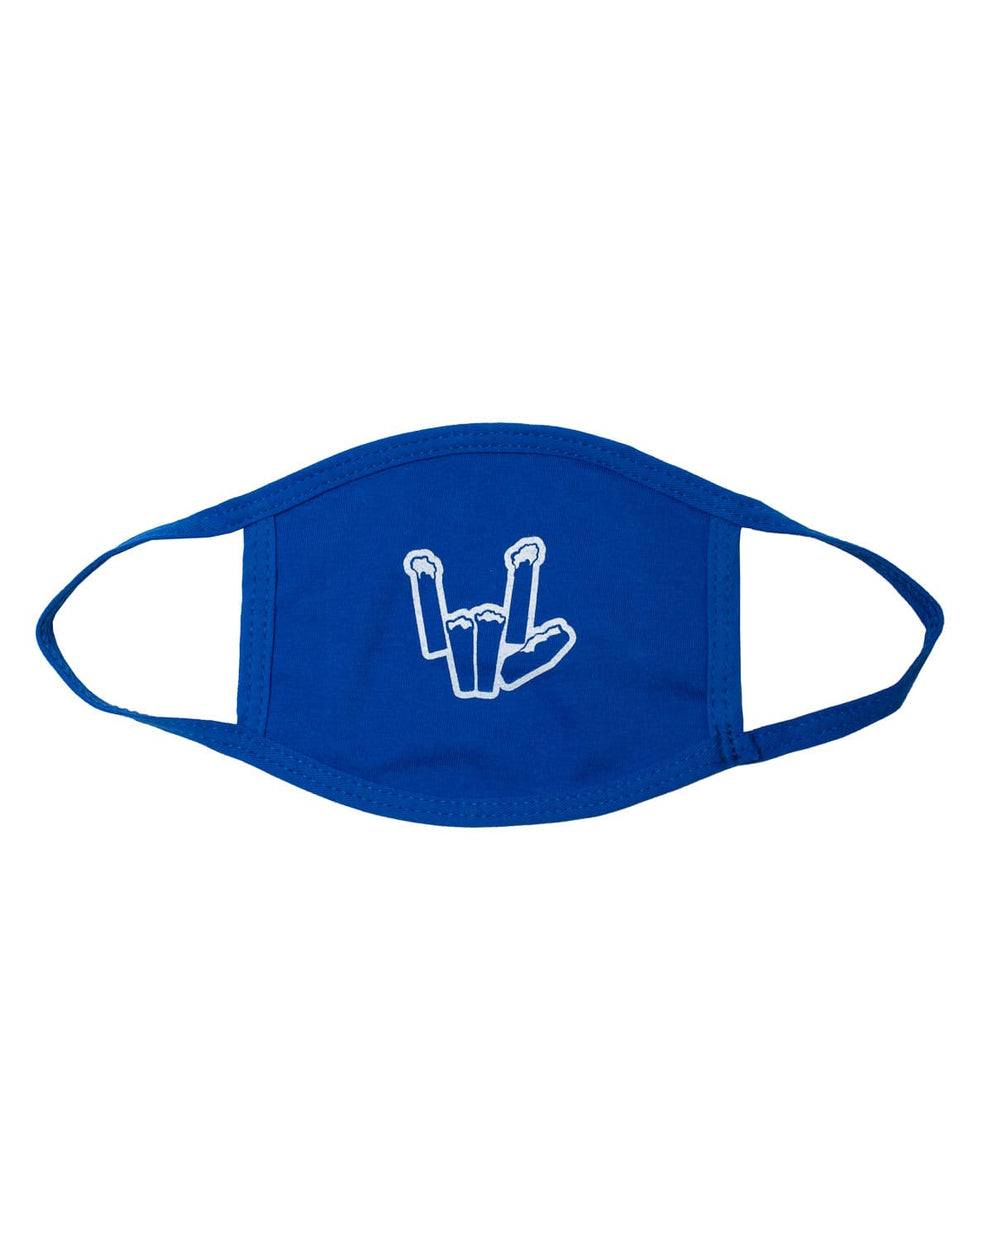 'Snowcap' Youth Face Mask - Blue